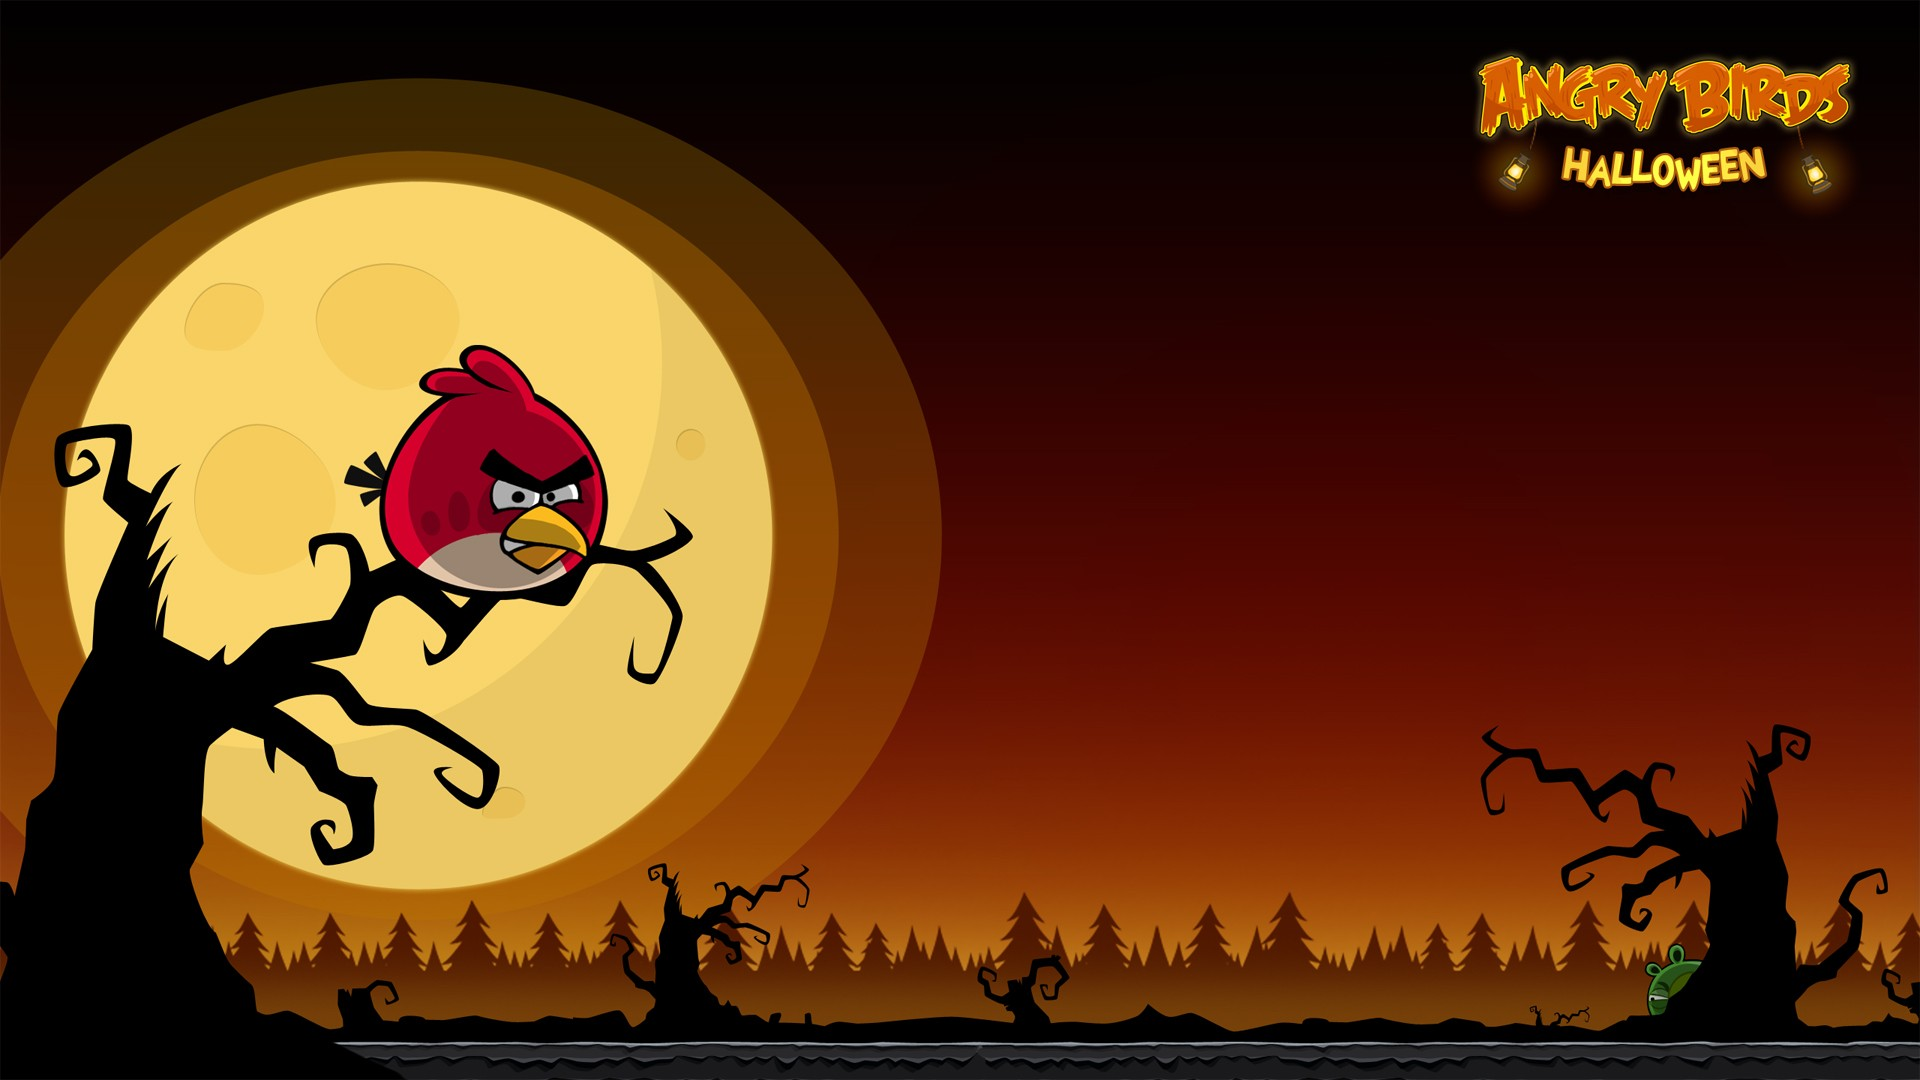 Angry Birds Halloween HD Background Download HD Images Amazing 1920x1080